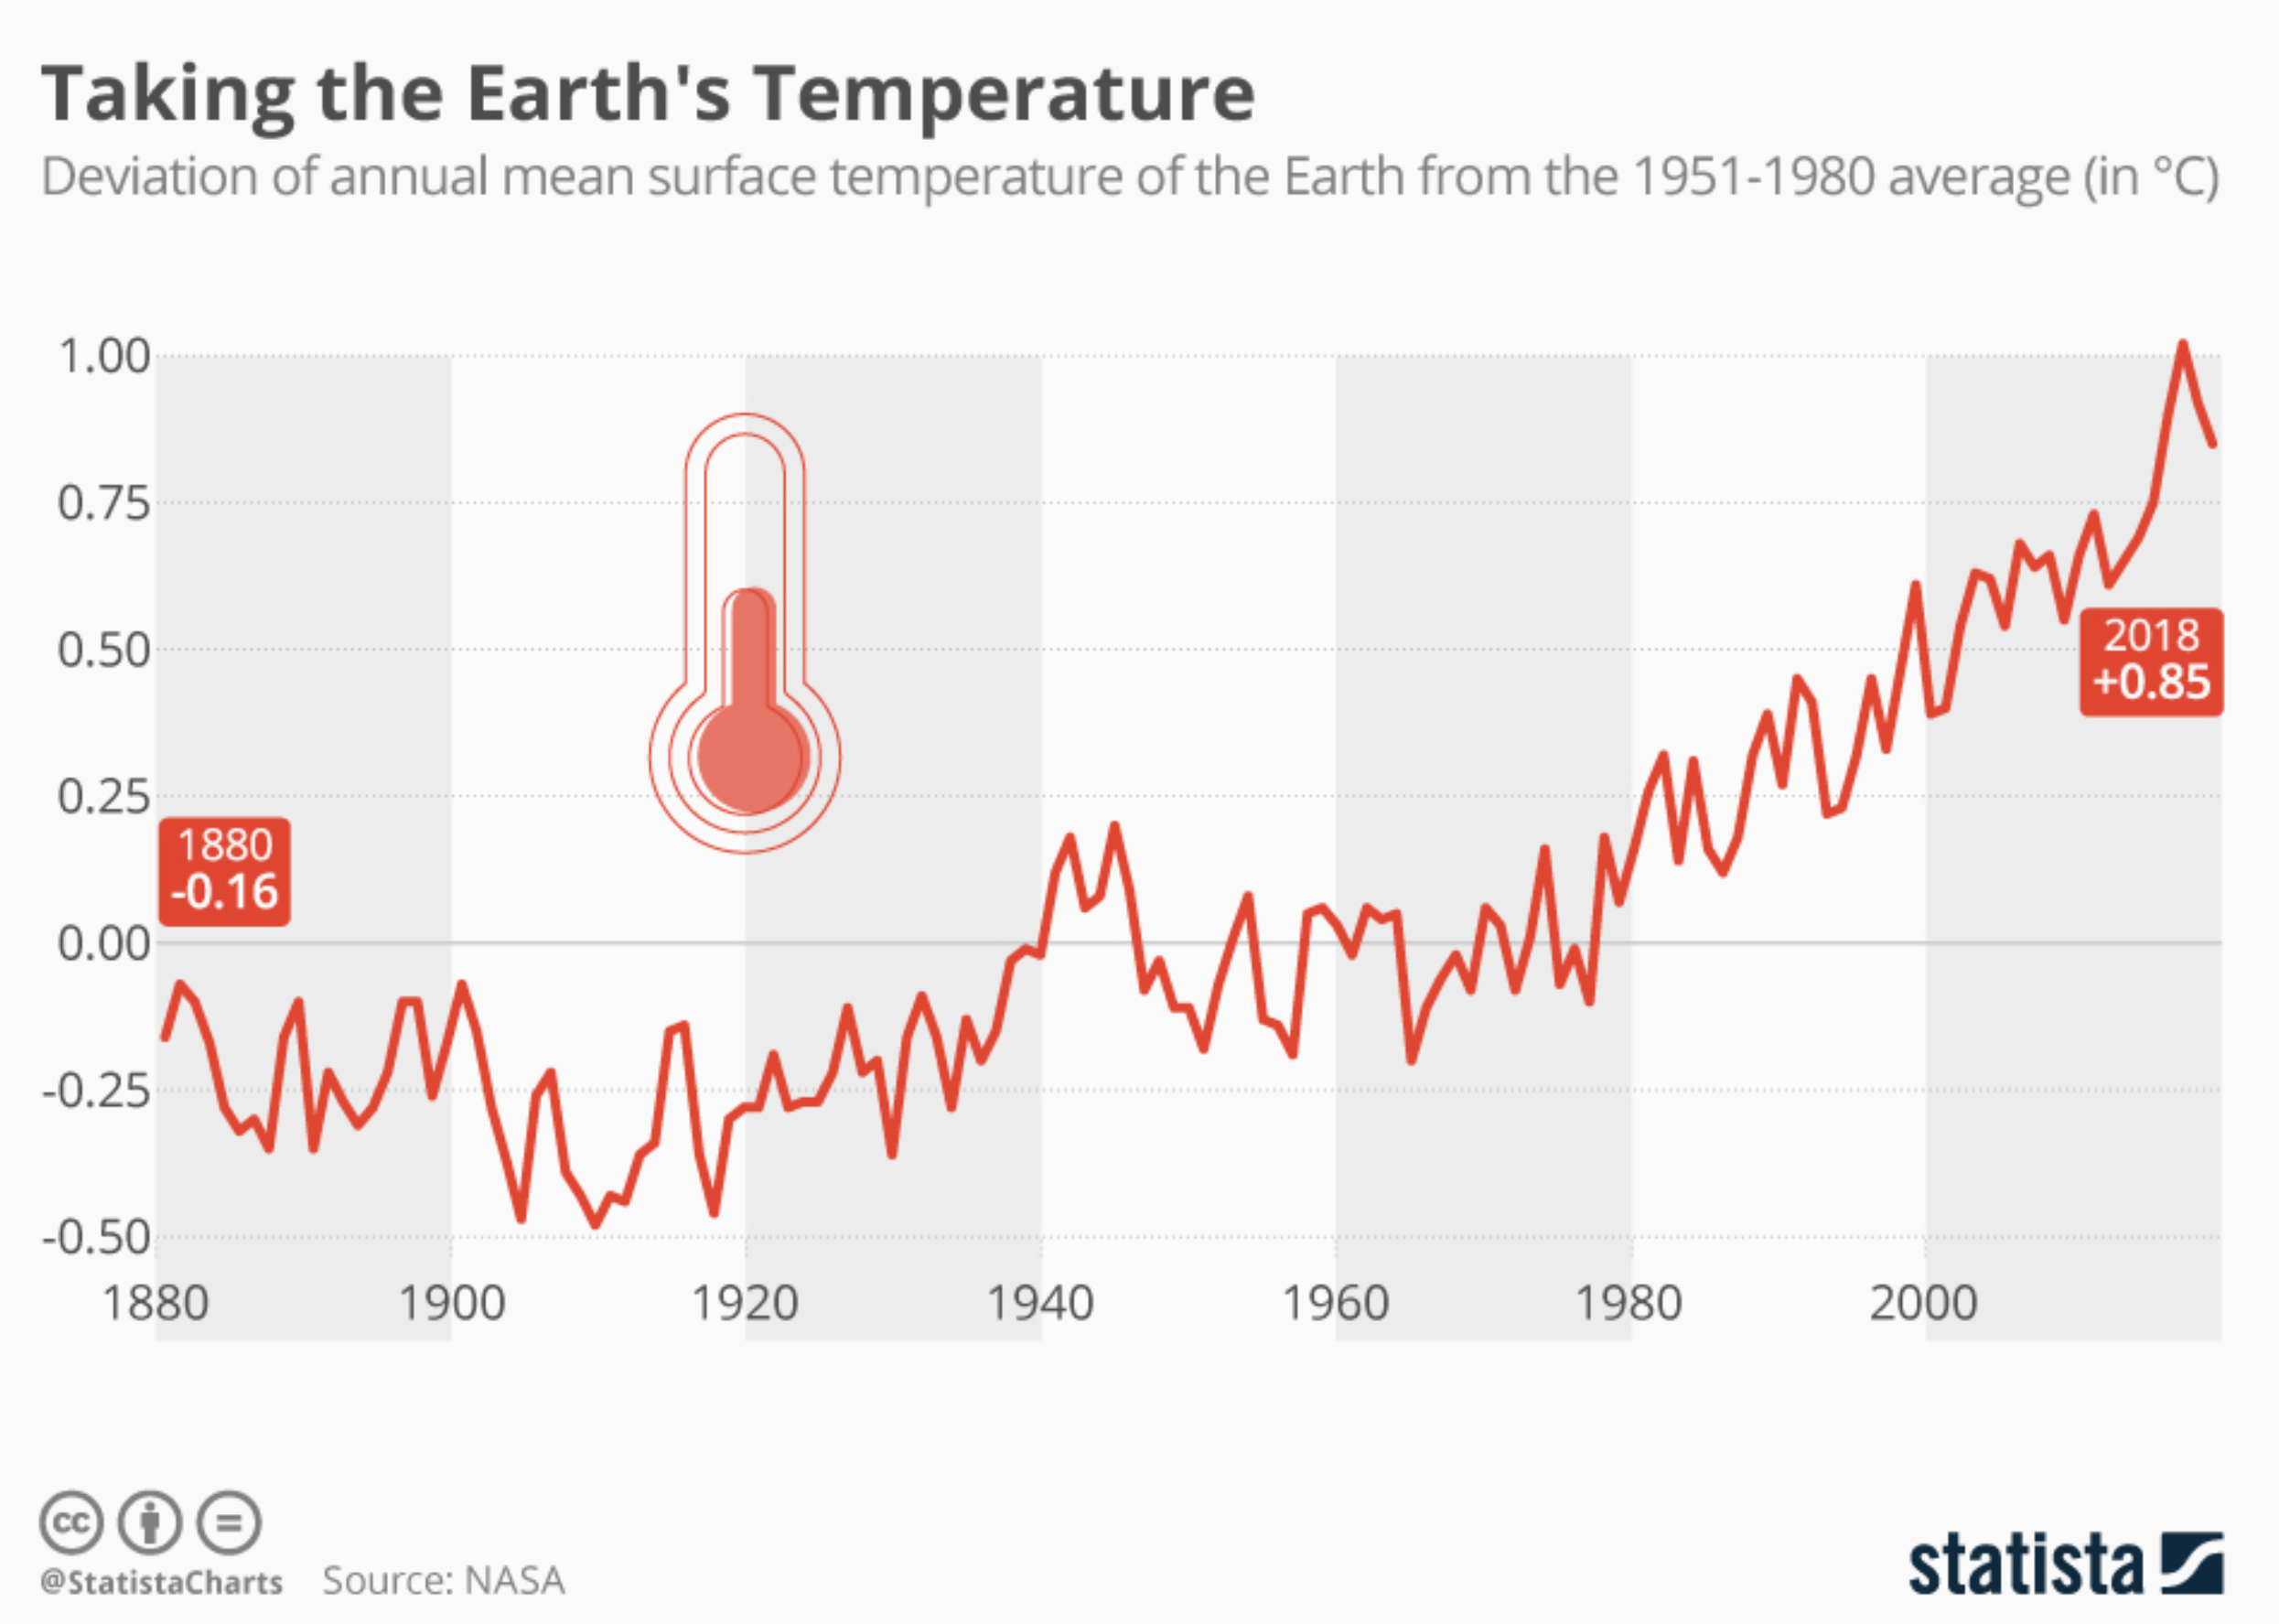 rising global temperatures across the planet